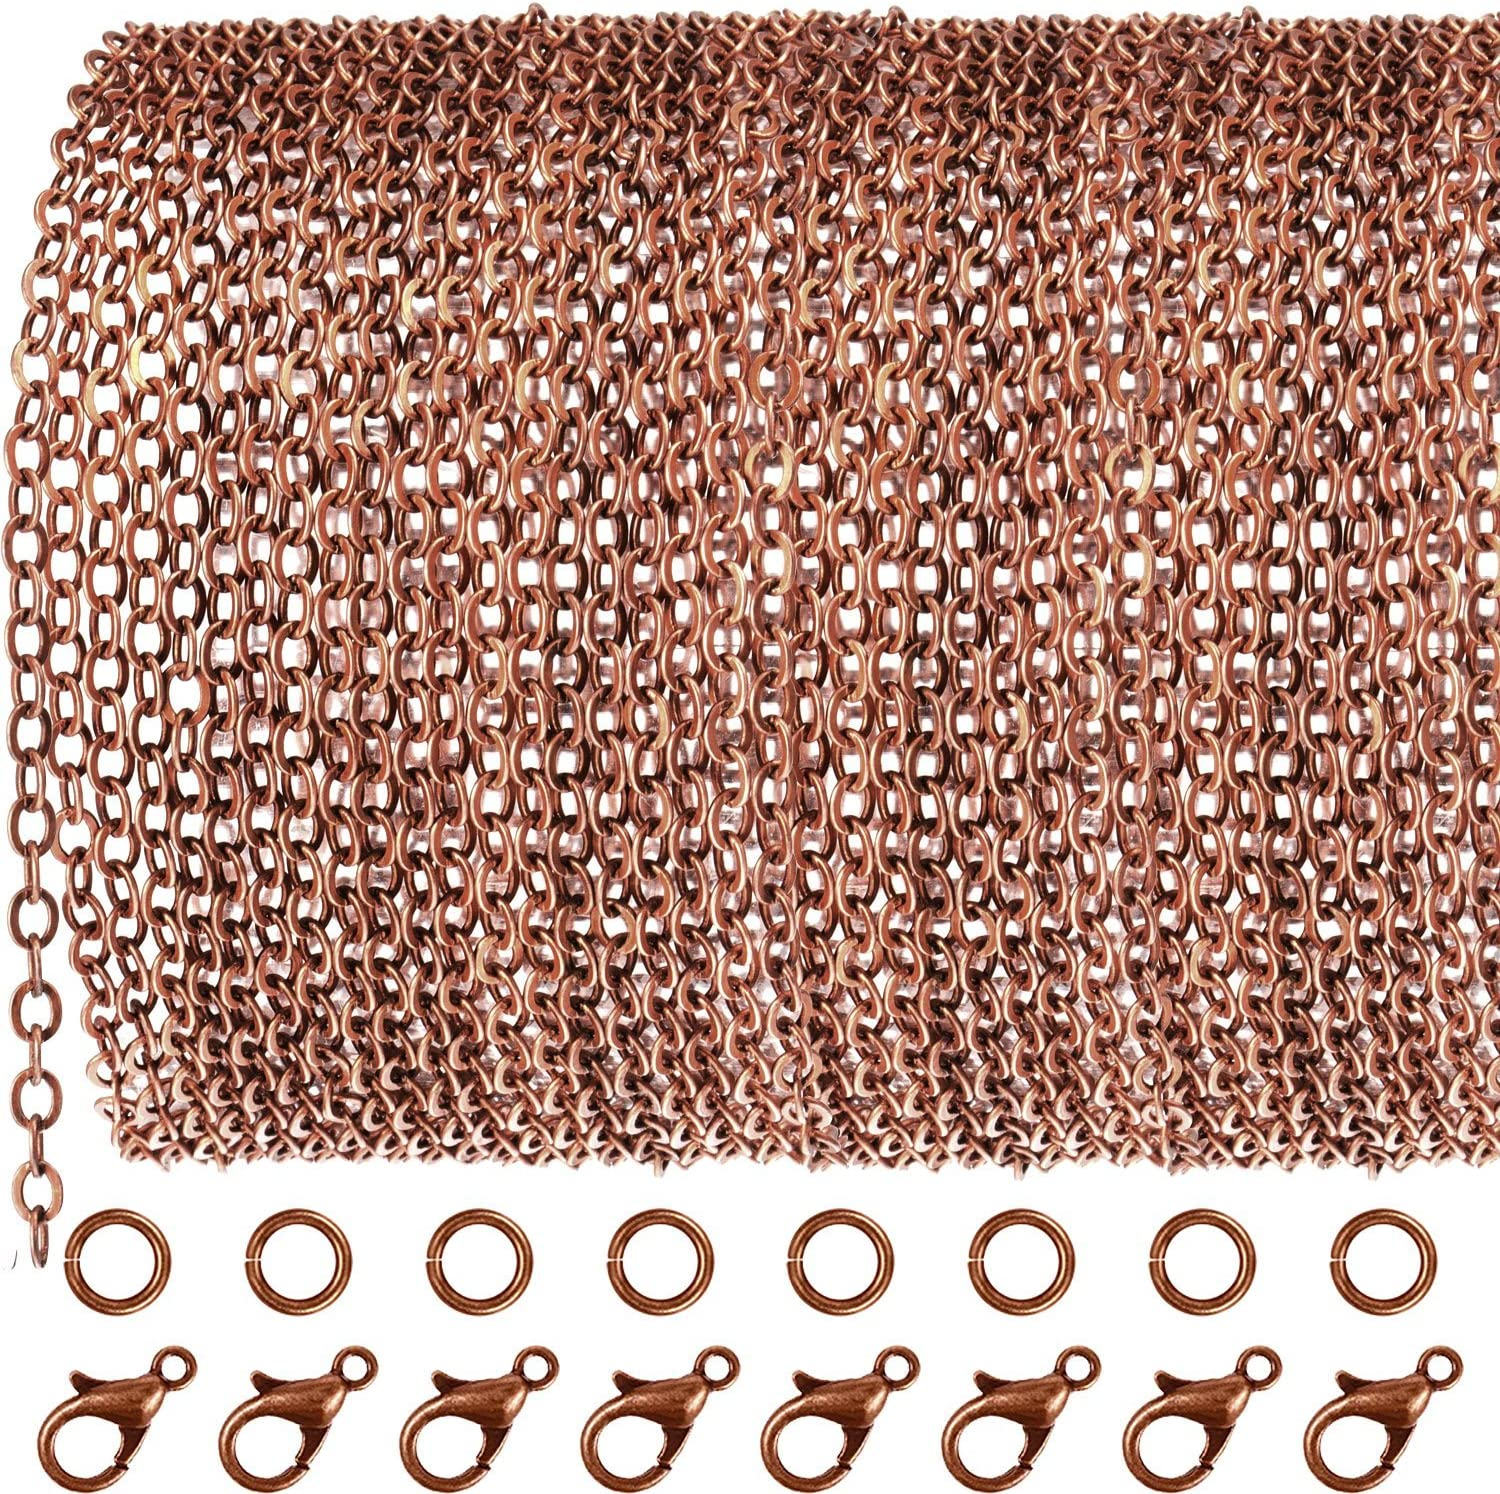 33F 32 feet of Antique Copper Flat Cable Chain 3x3mm Solder Cable Chain